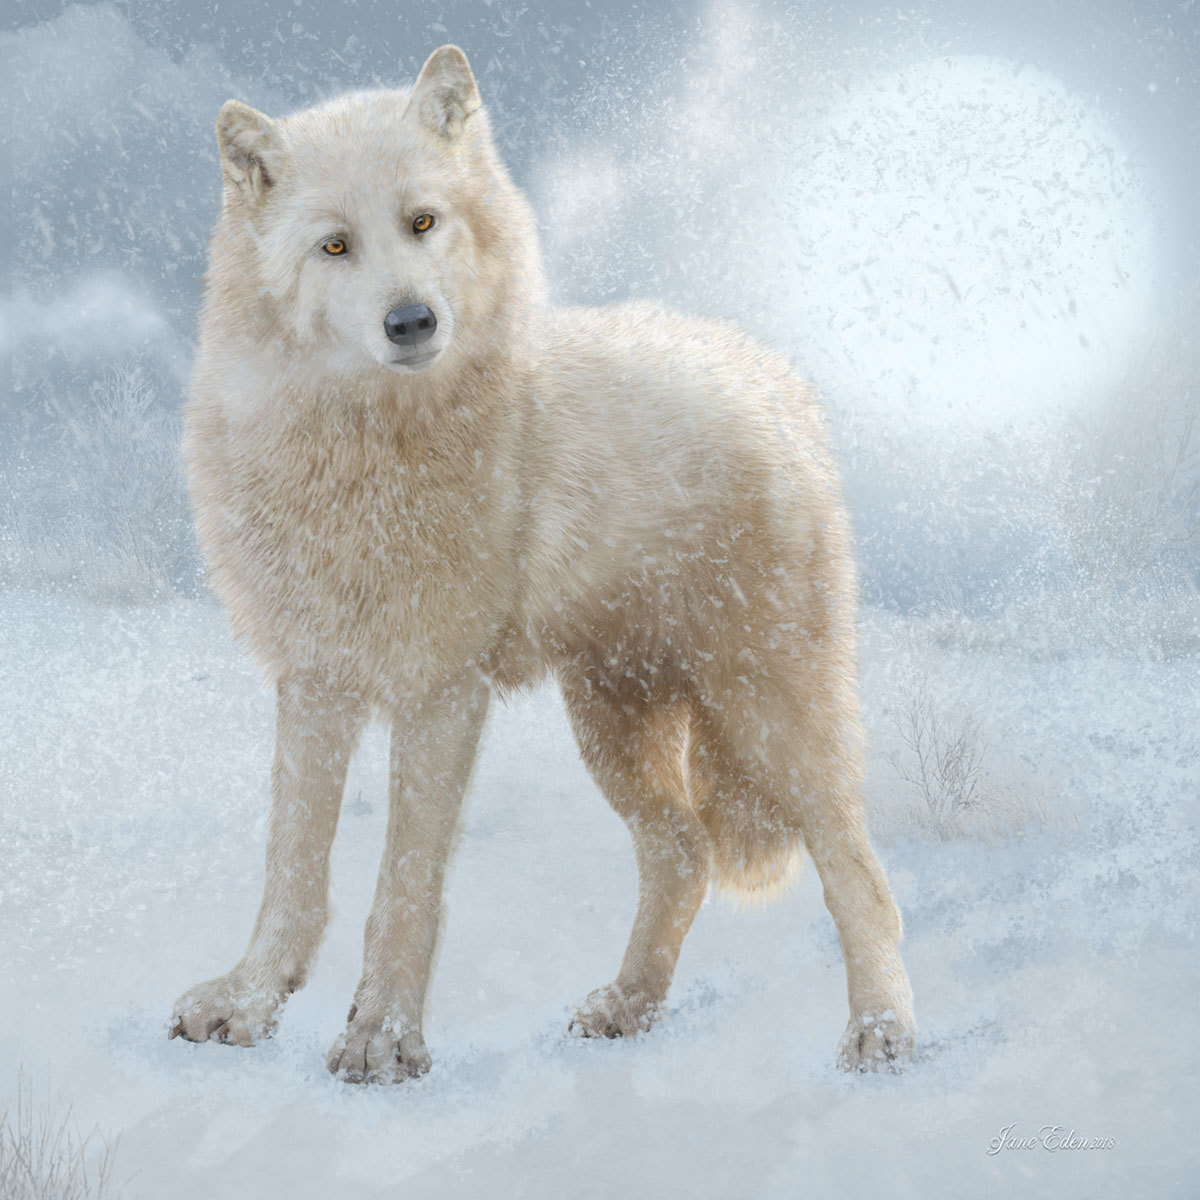 Lone Arctic Wolf - Happy Christmas to my friends!